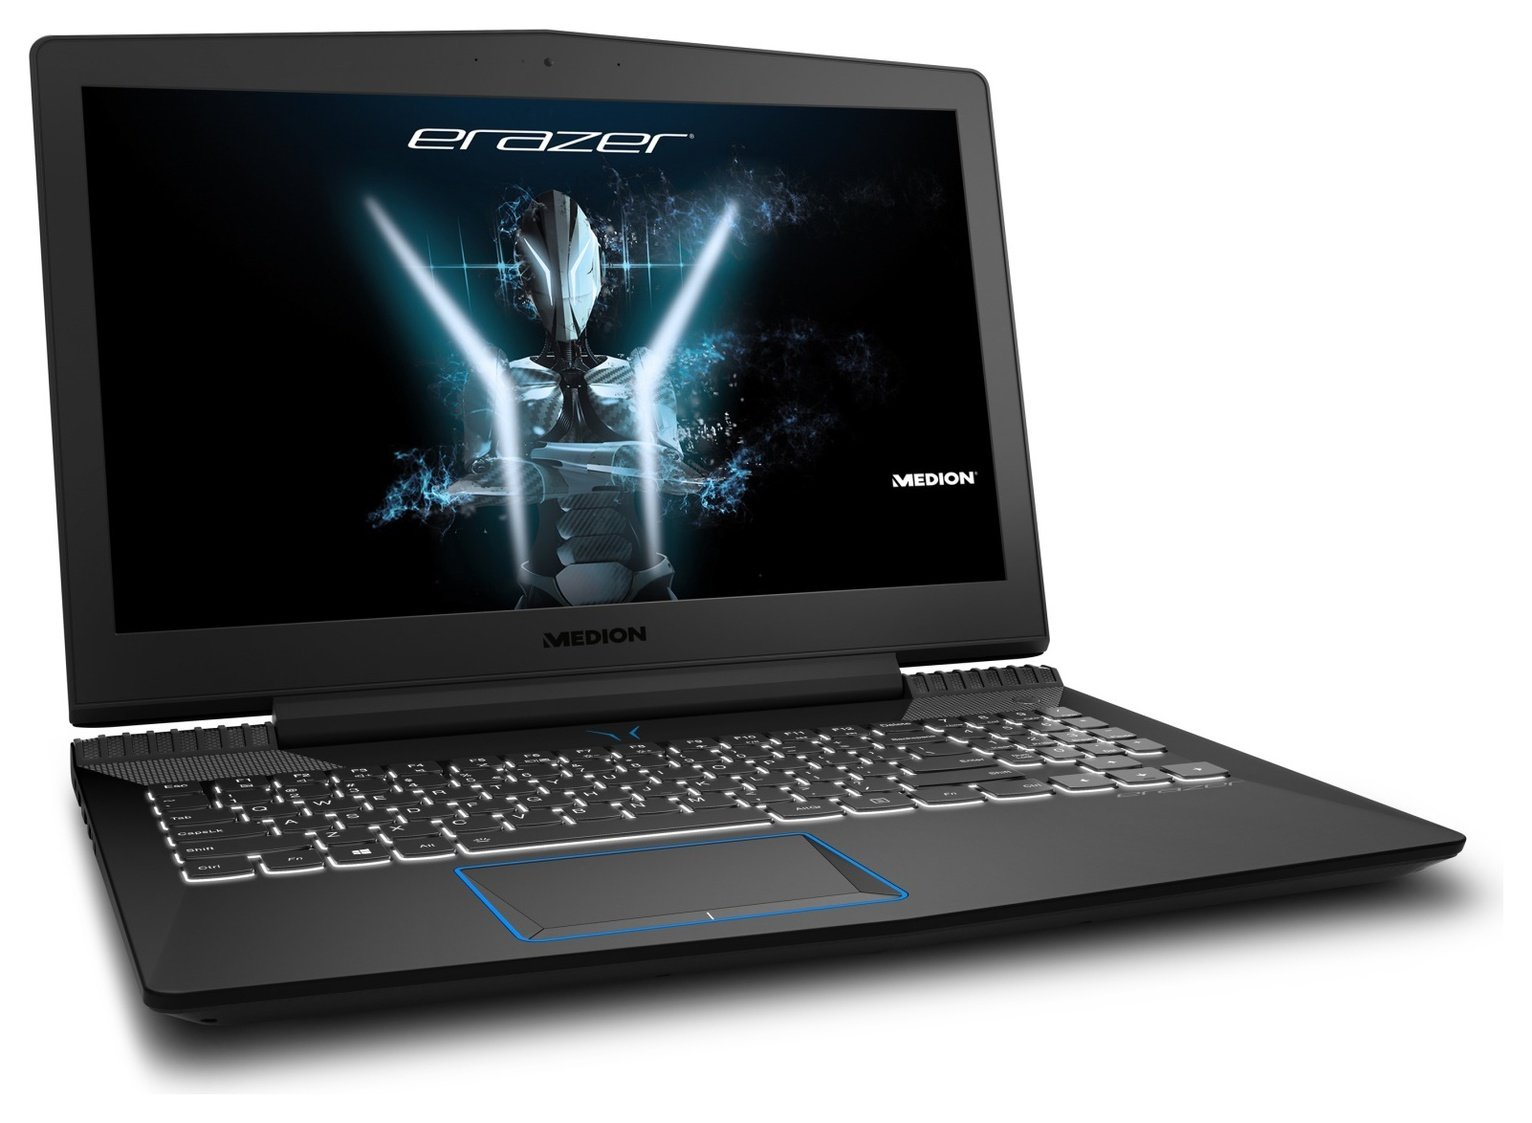 Medion Medion Erazer X6603 i7 15 In 8GB 256GB Gaming Laptop